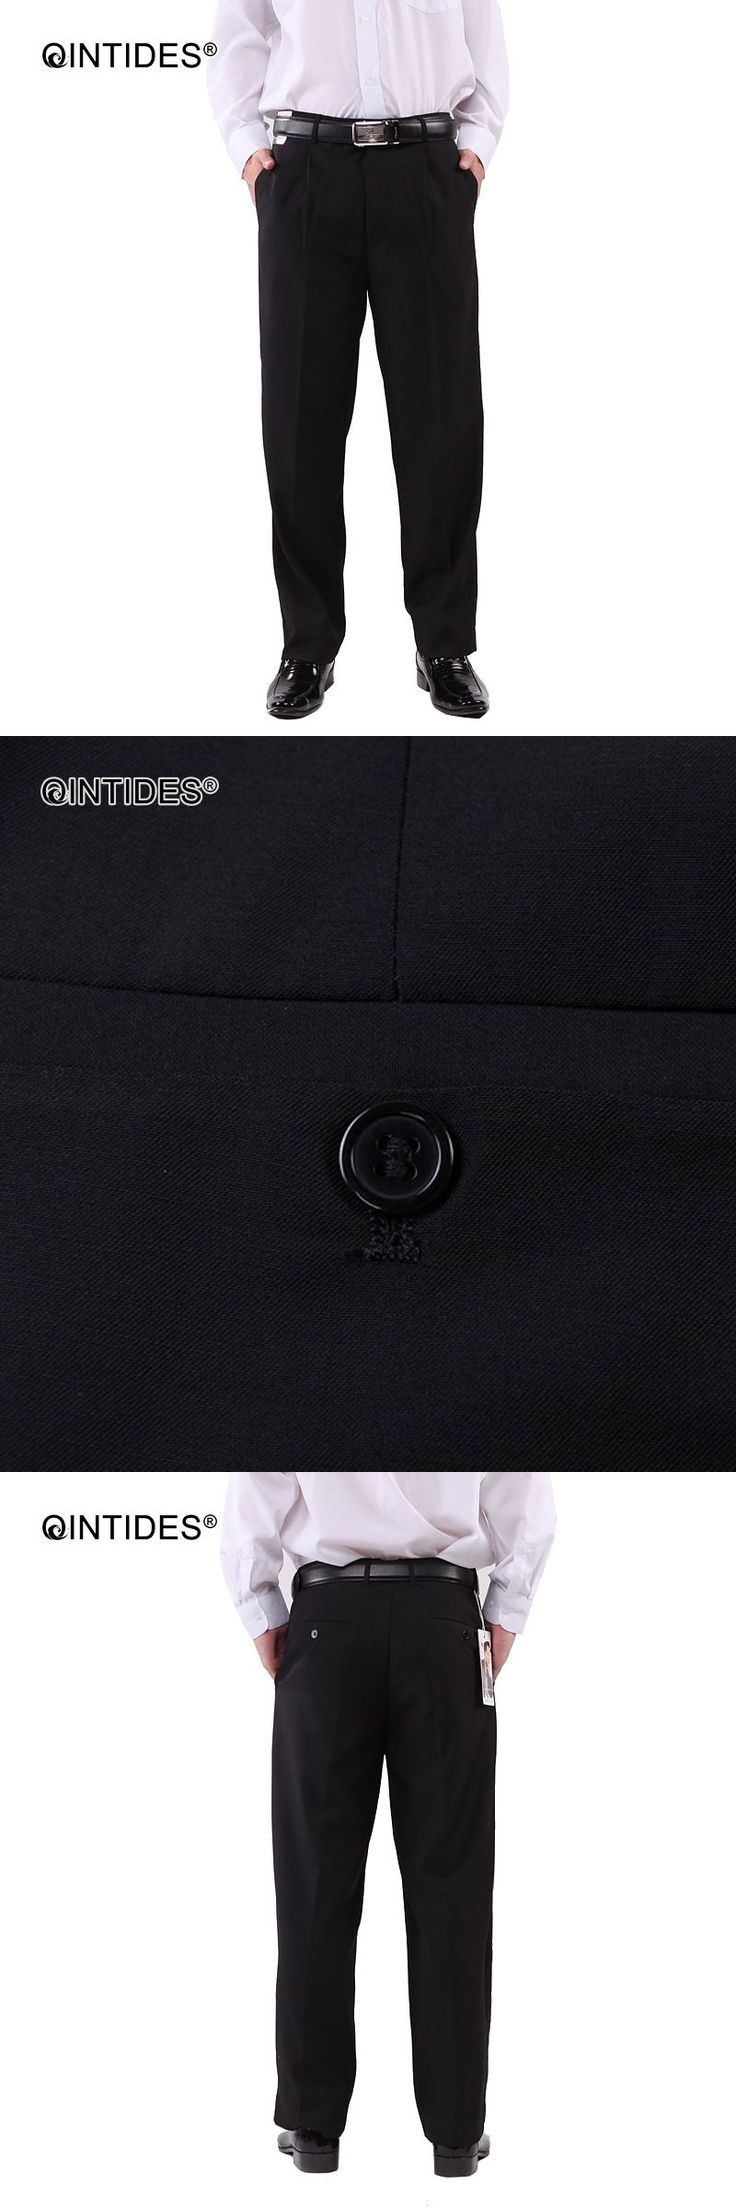 QINTIDES Hotel work overalls trousers Business suit pants Black trousers suit trousers